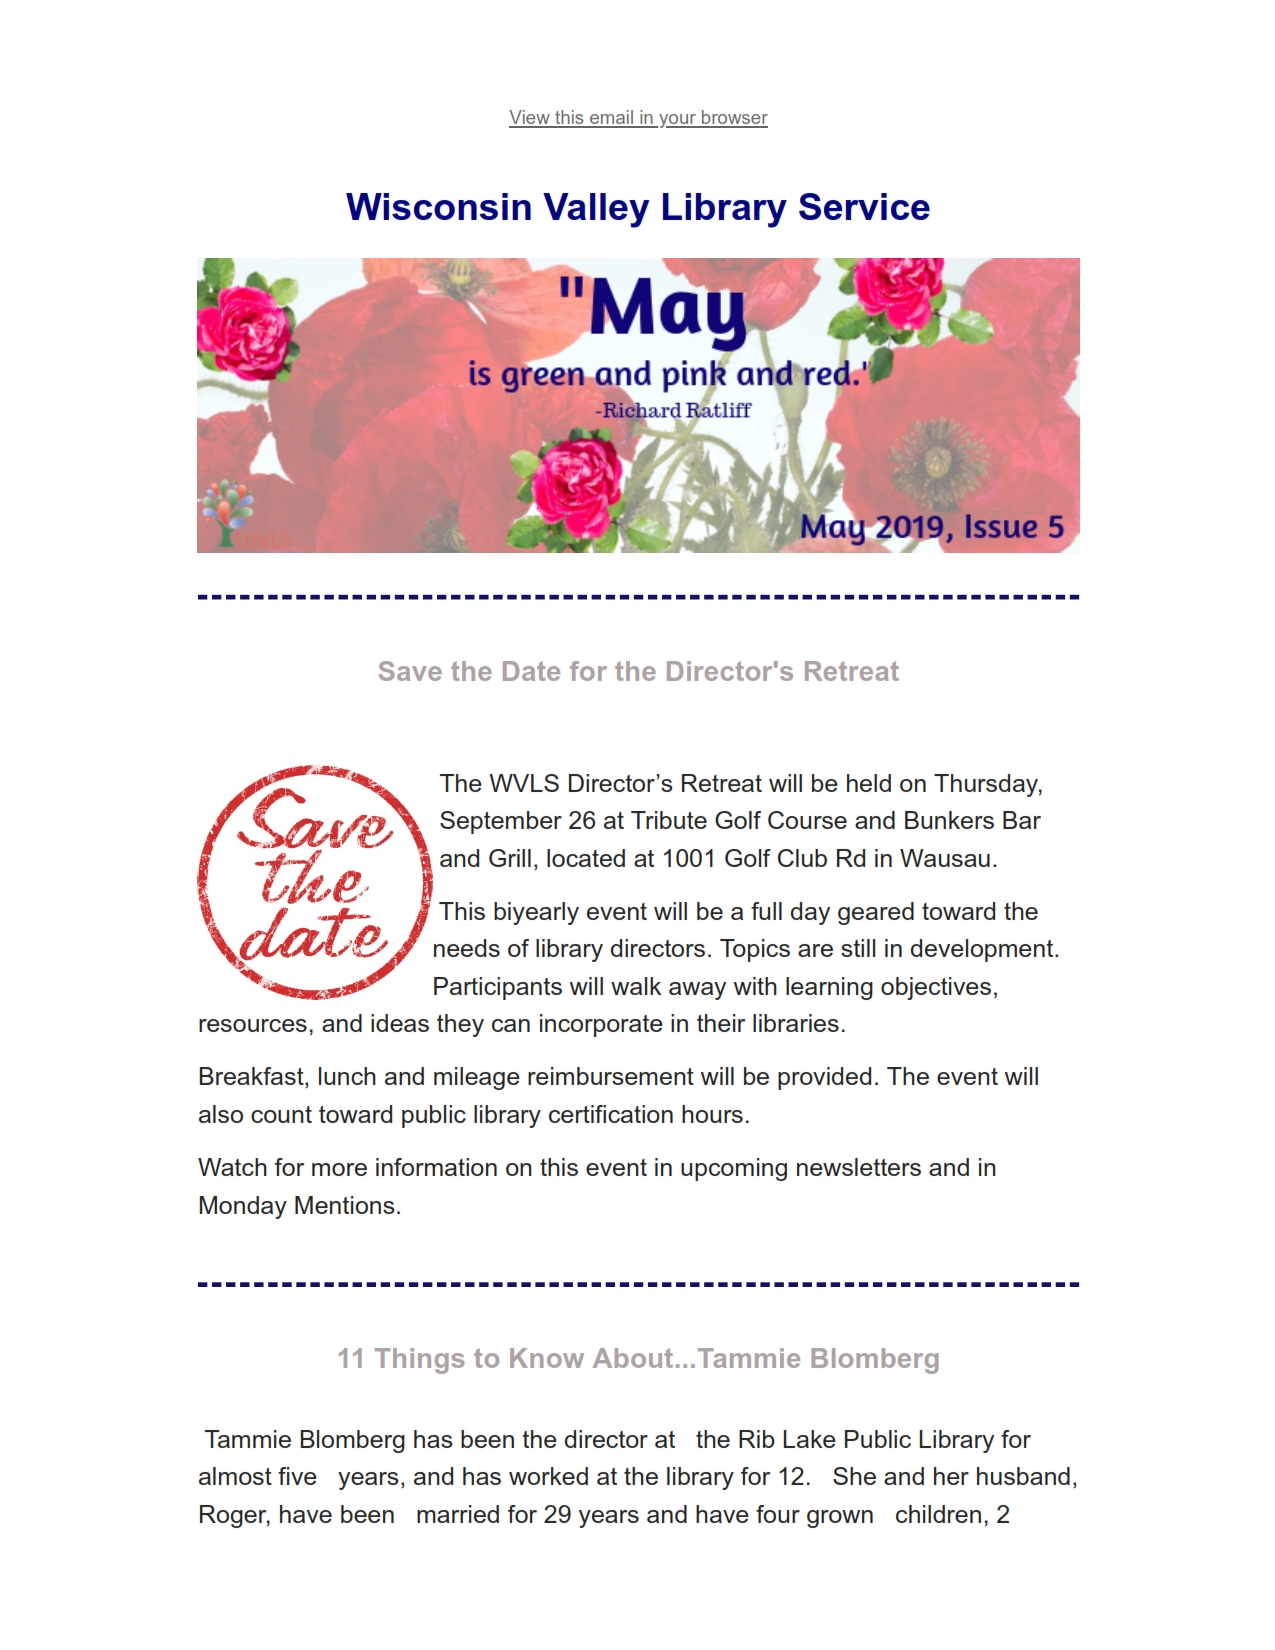 WVLS May Newsletter_001